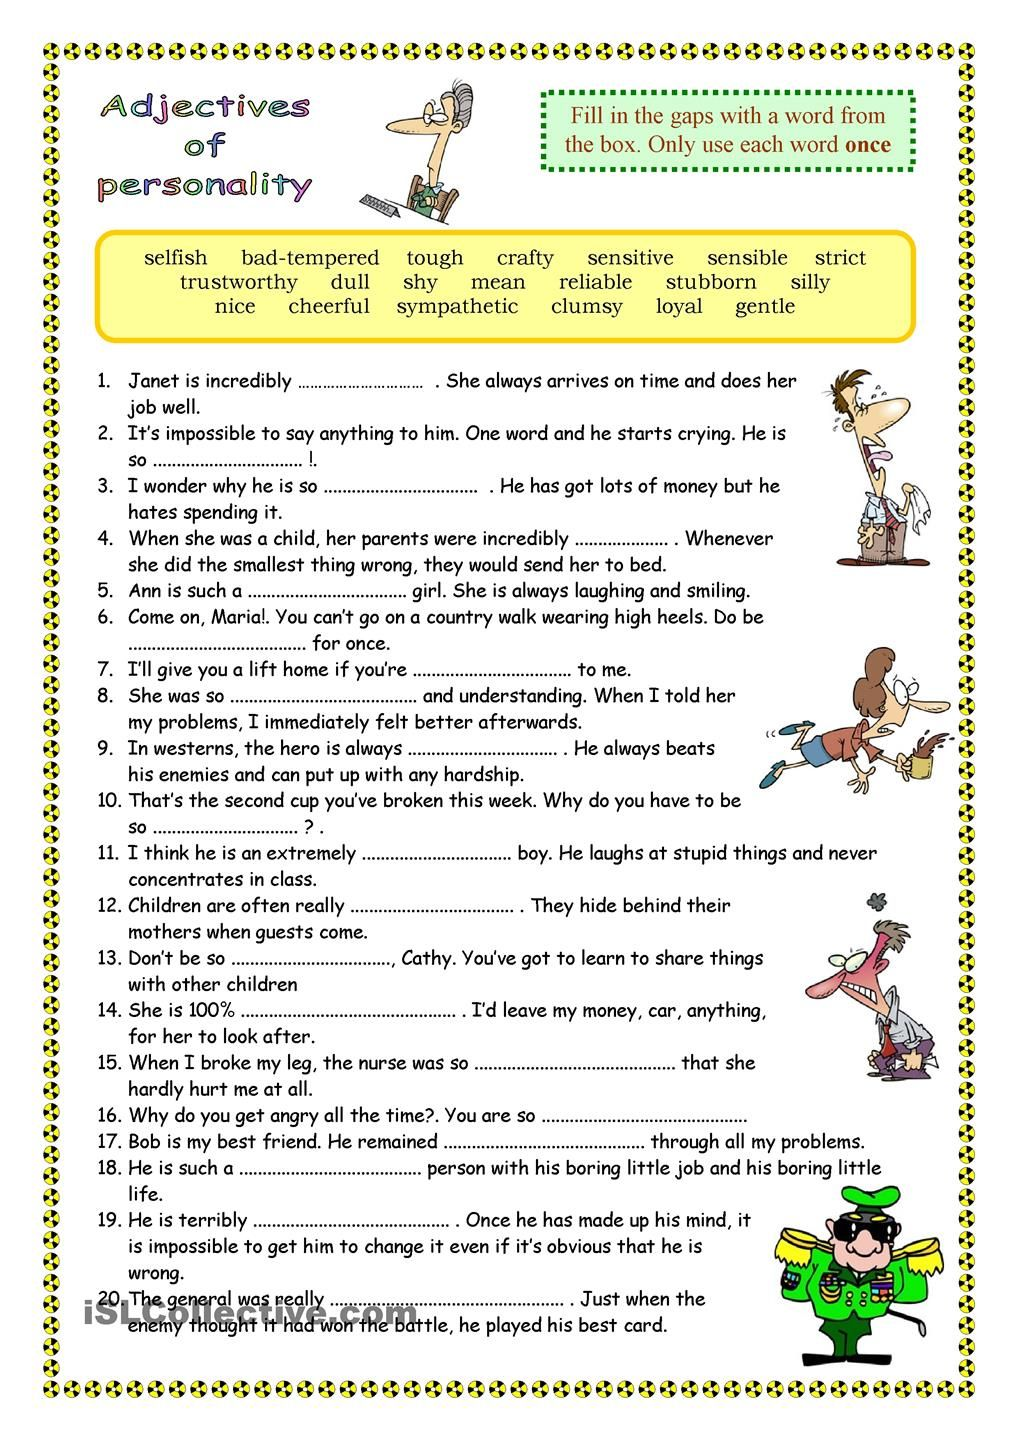 worksheet Order Of Adjectives Worksheet 10 best images about adjectives on pinterest english grammar test anchors and student centered resources